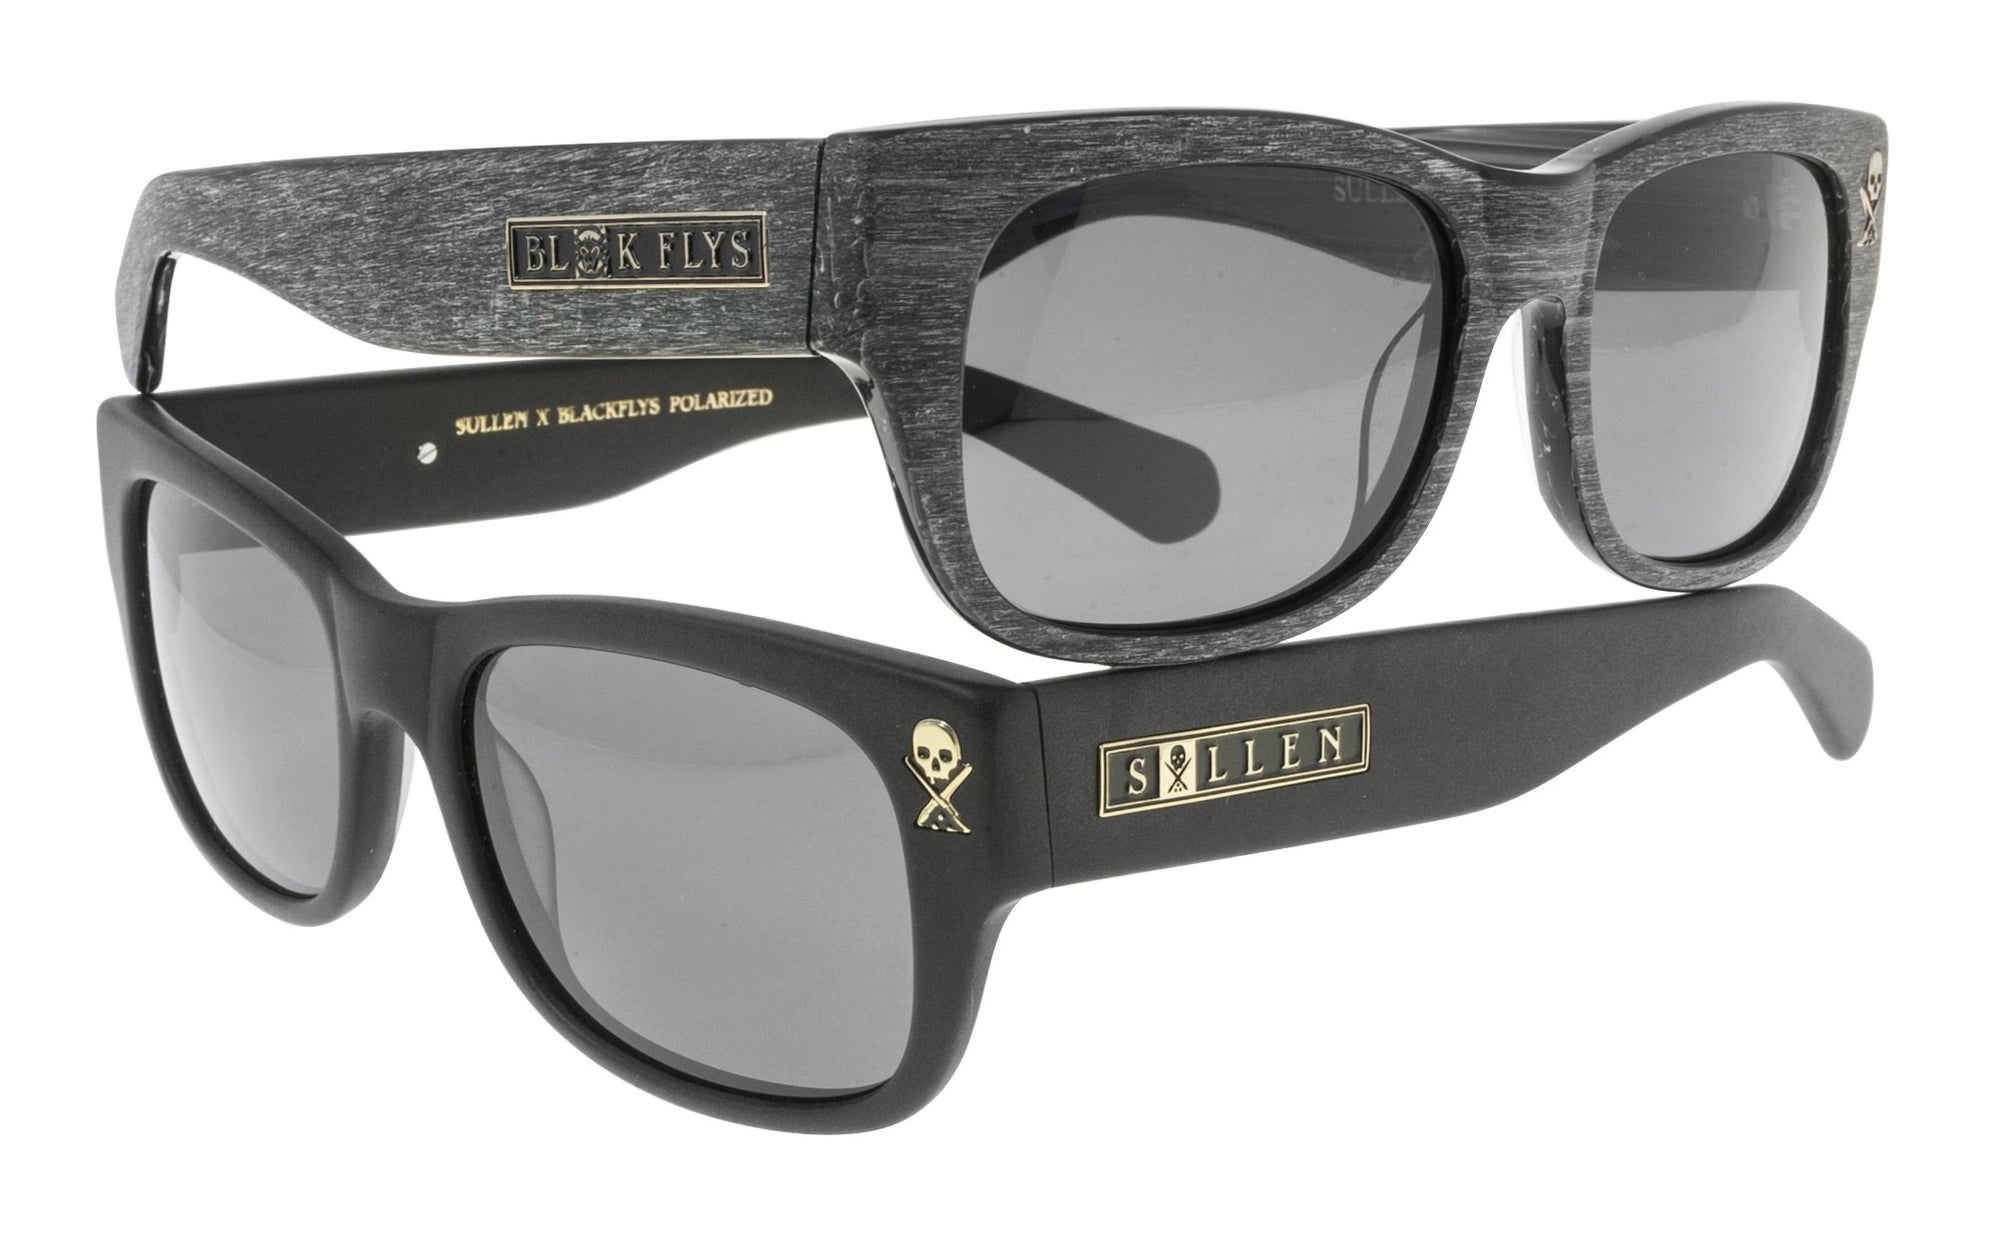 Sullen Fly 2 Collab Sunglass